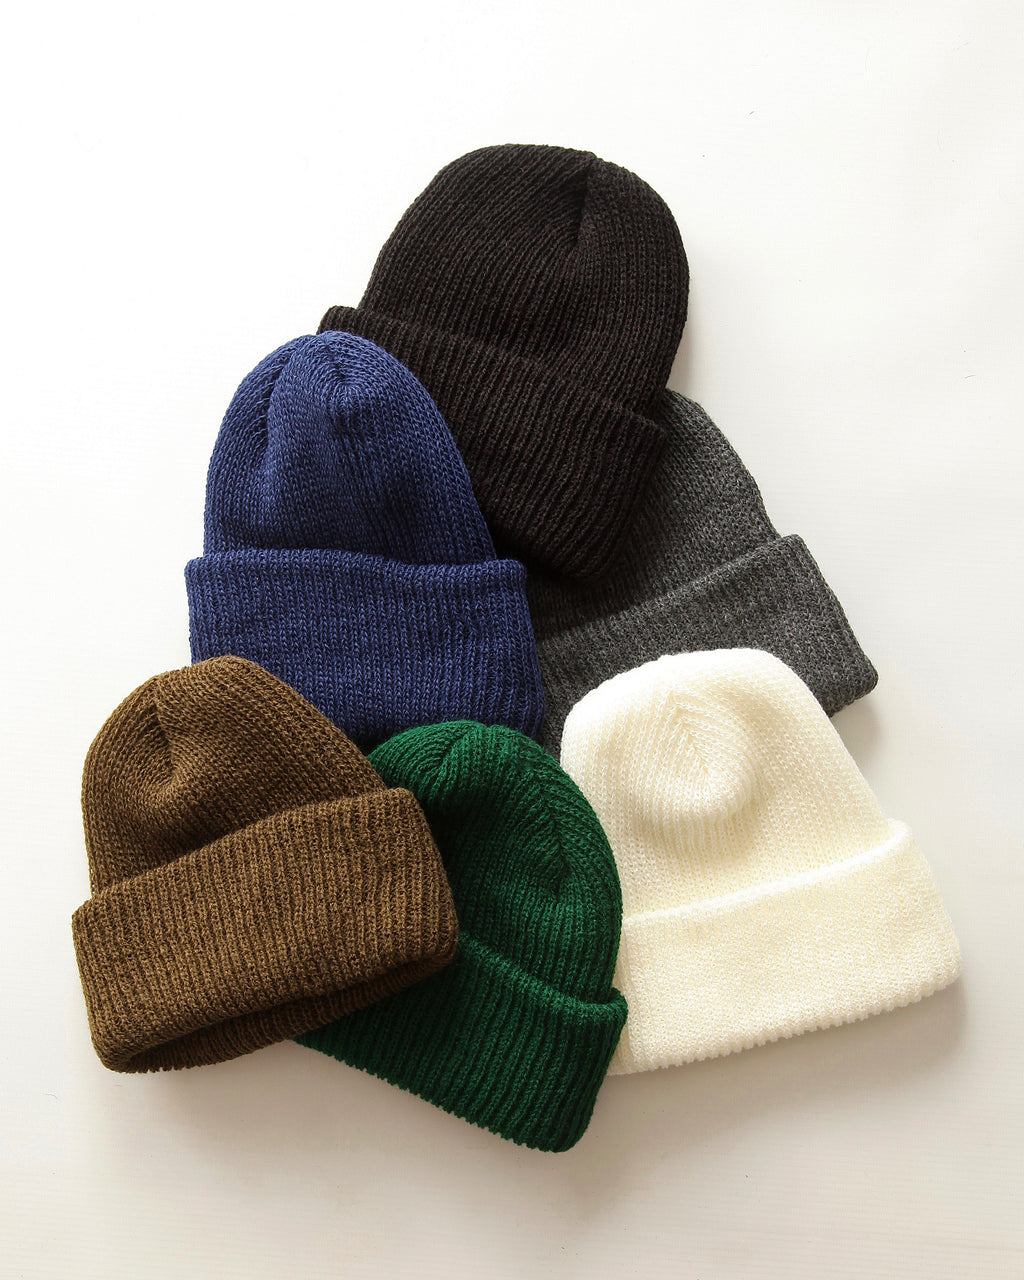 Artex Knitting Mills - Watch Cap Beanie - Forest Green